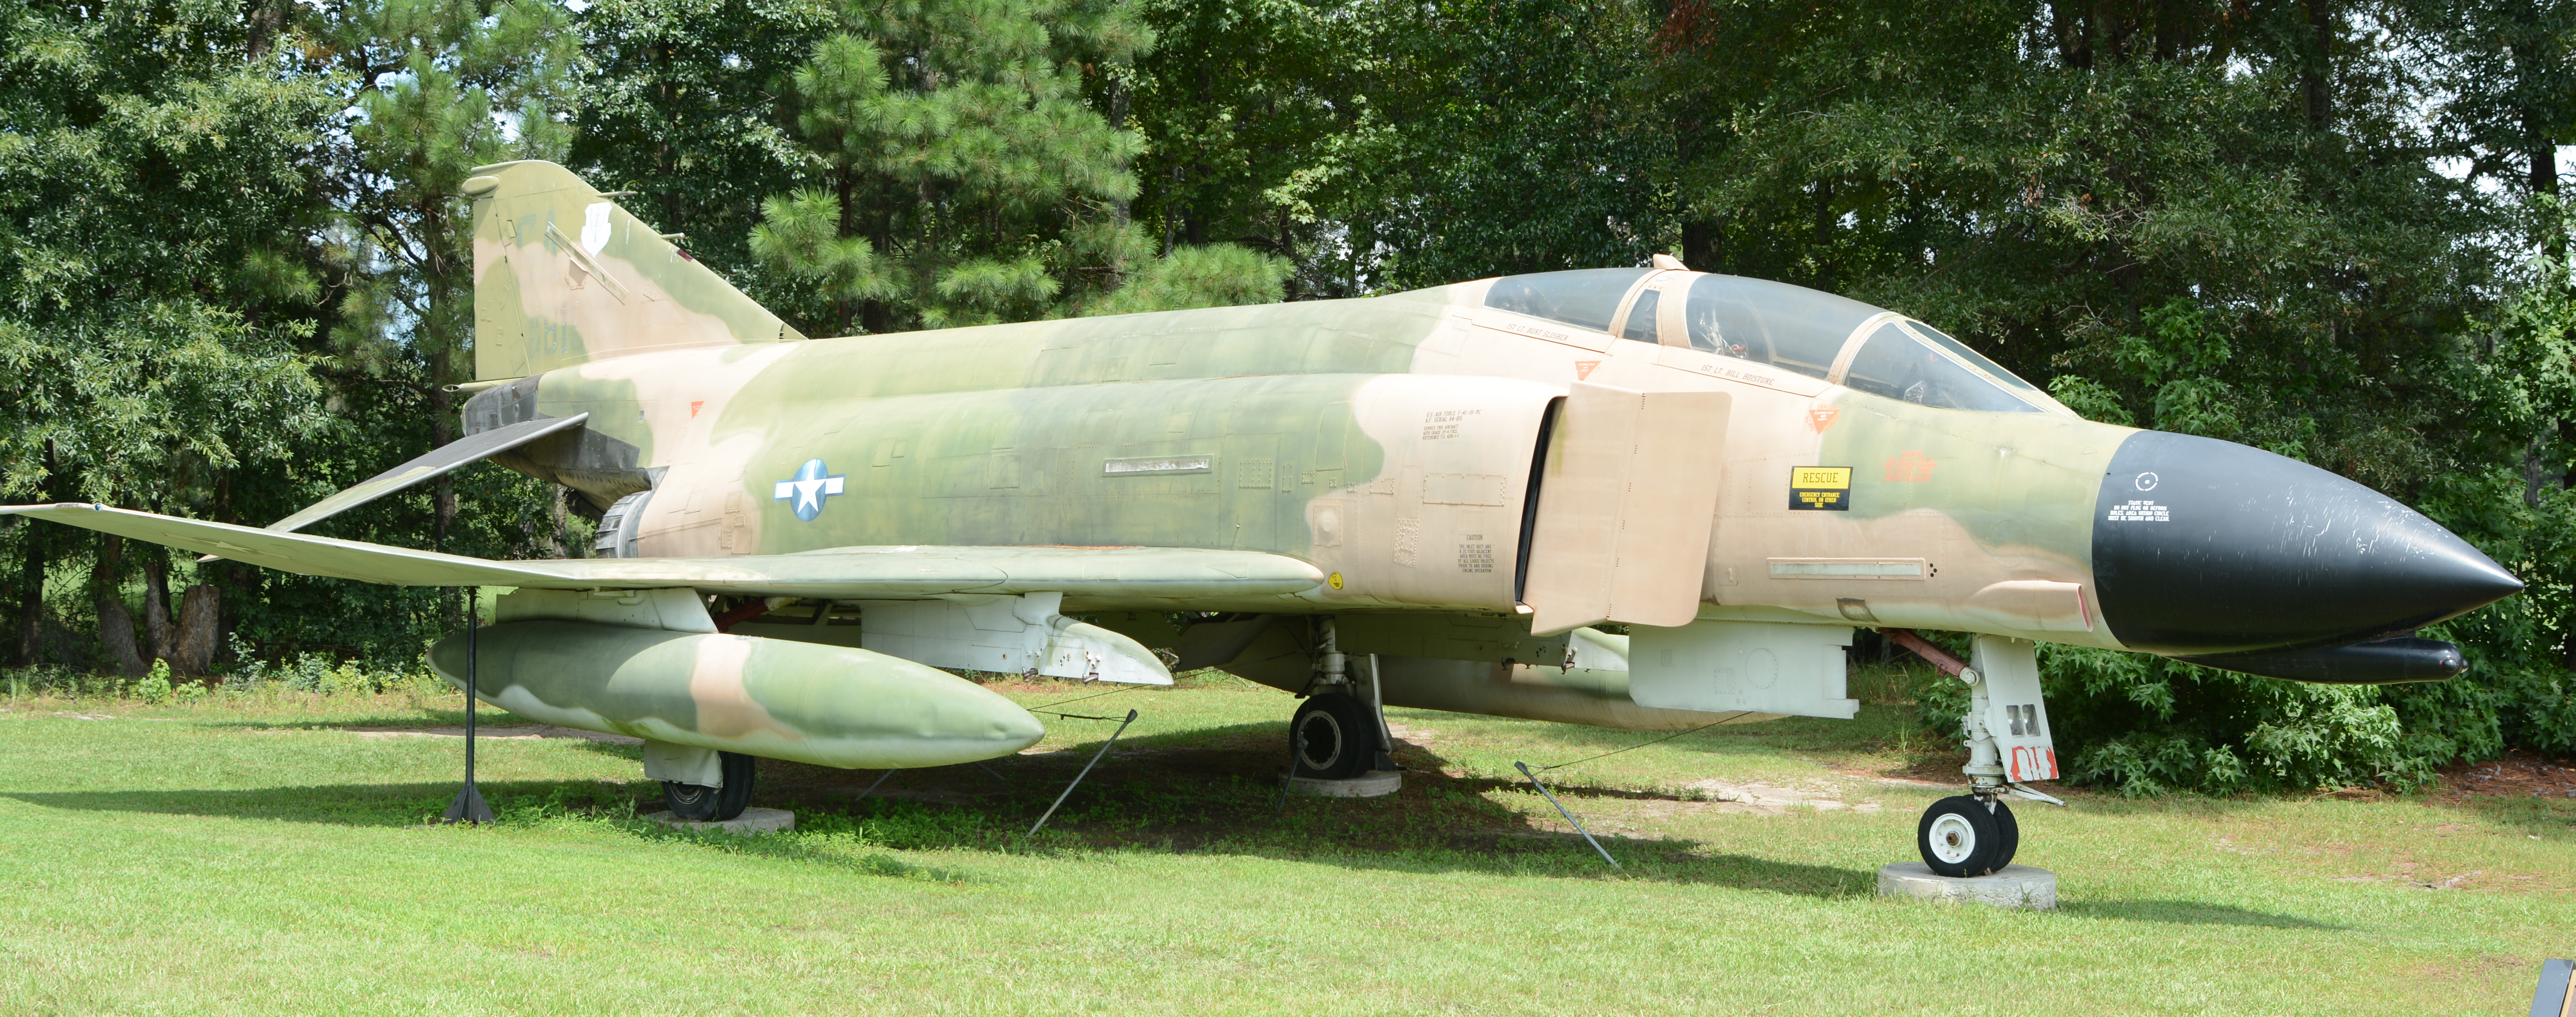 FileF Phantom At Mighty Th Air Force Museum Pooler GA USjpg - Air force museums in us